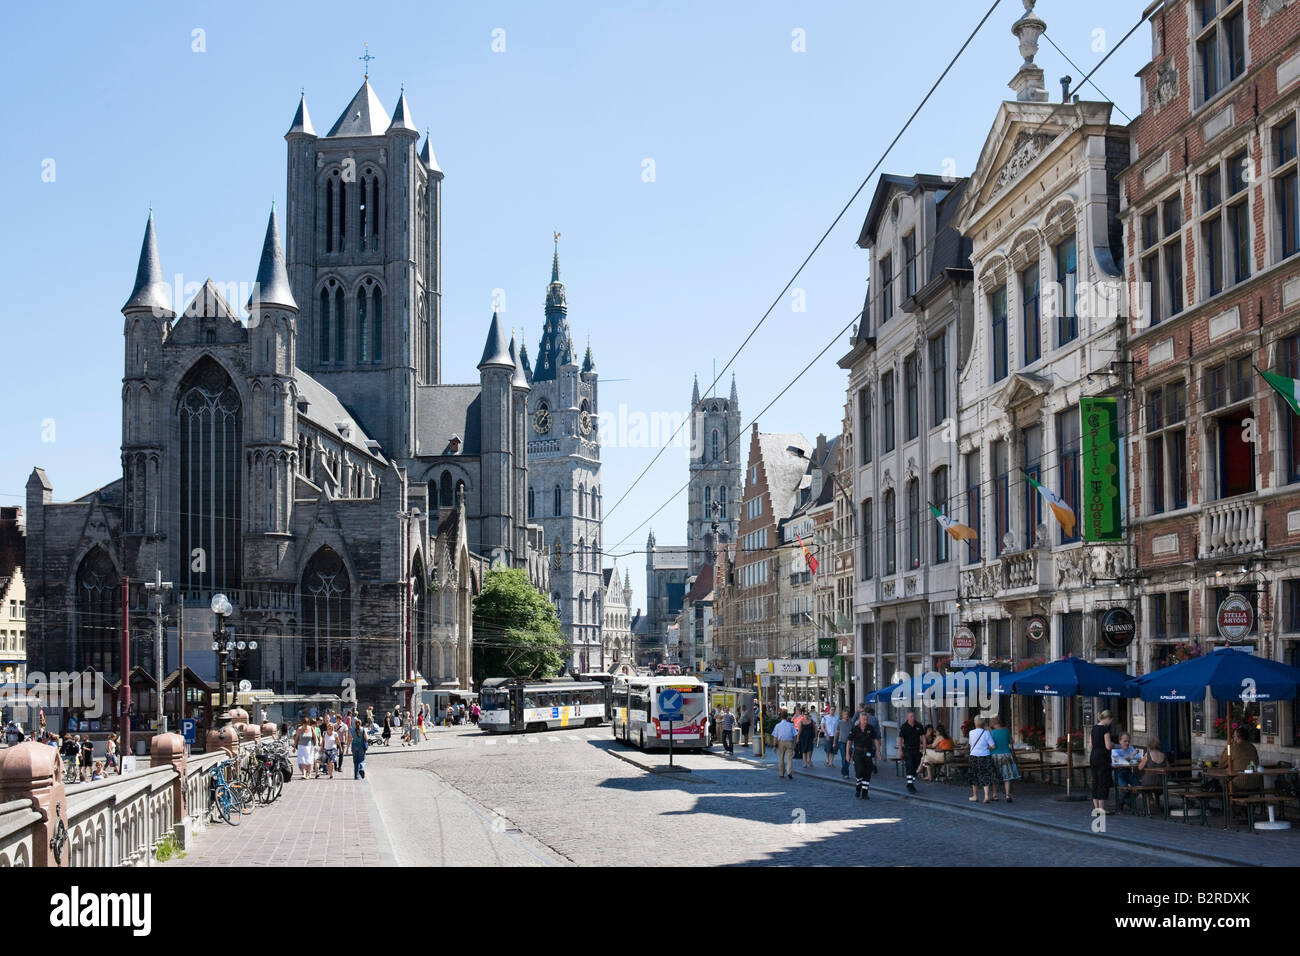 View down St Michielshelling towards St Niklasskerk, Gouden Leeuwplein and the Cathedral, Ghent, Belgium - Stock Image